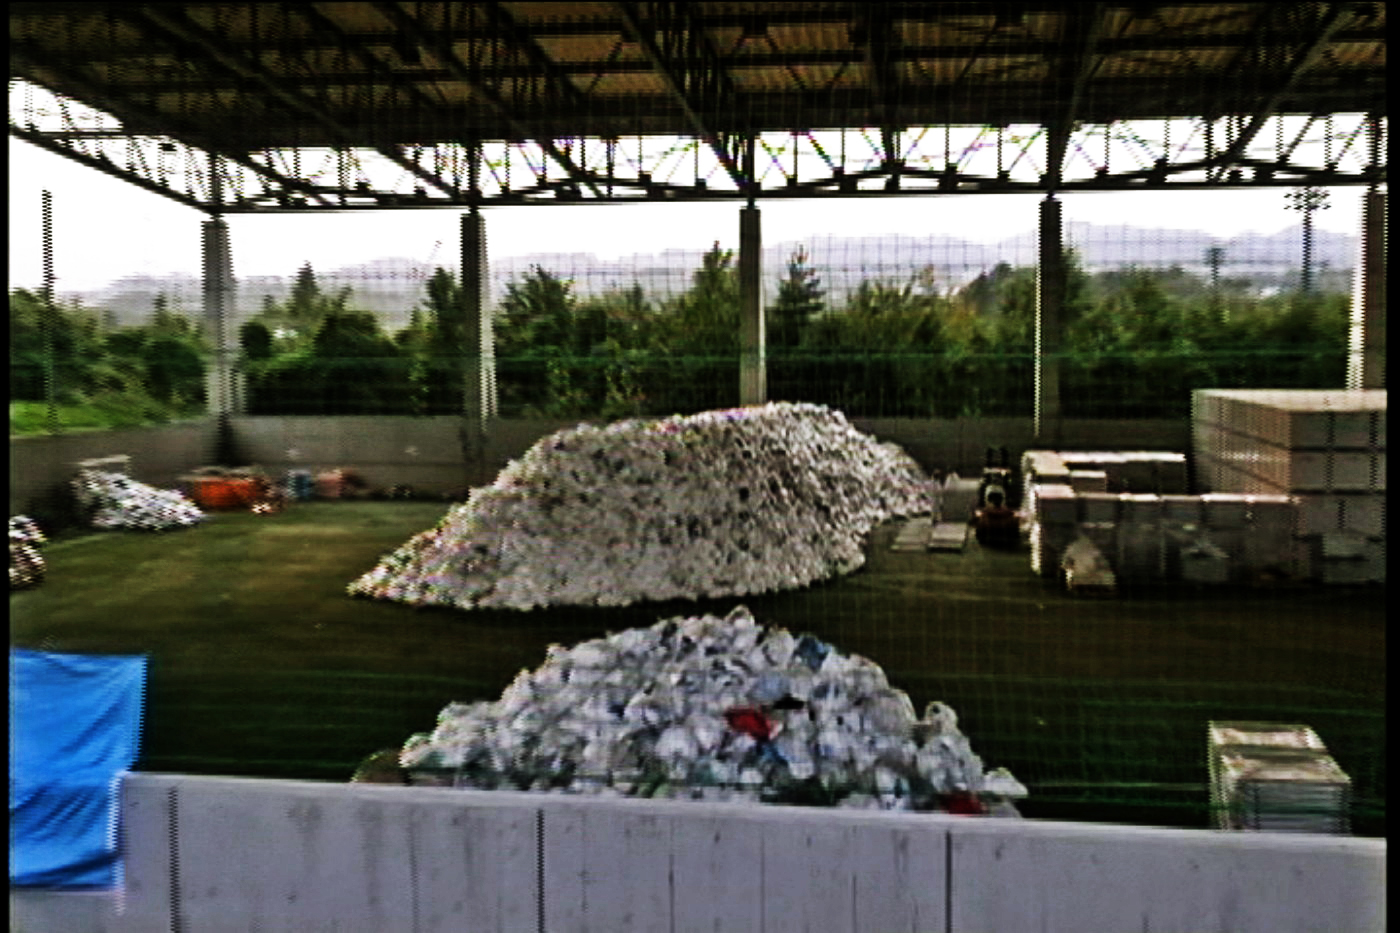 Radioactive wastes dump (Tyvek etc) (1)